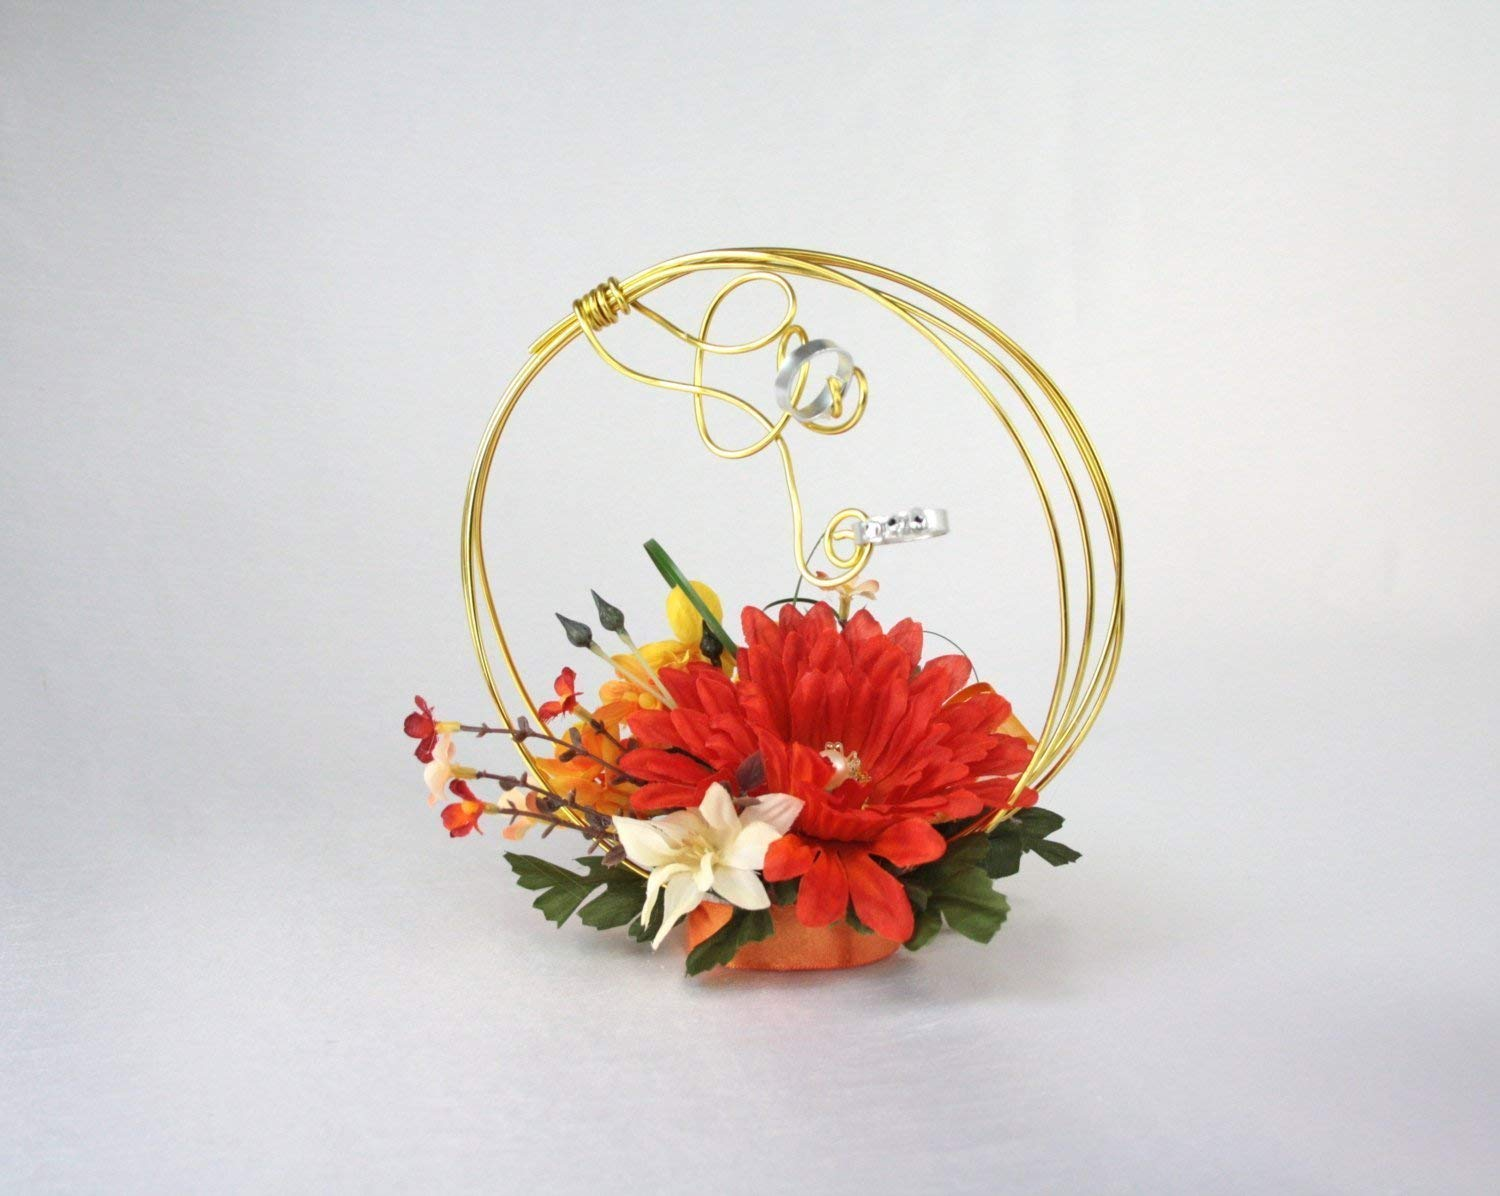 Ring holder alternative, Flower girl accessories, Orange and gold rings holder, Ring bearer pillow alternative, Ring Holder, Alternative flowers girl bouquet